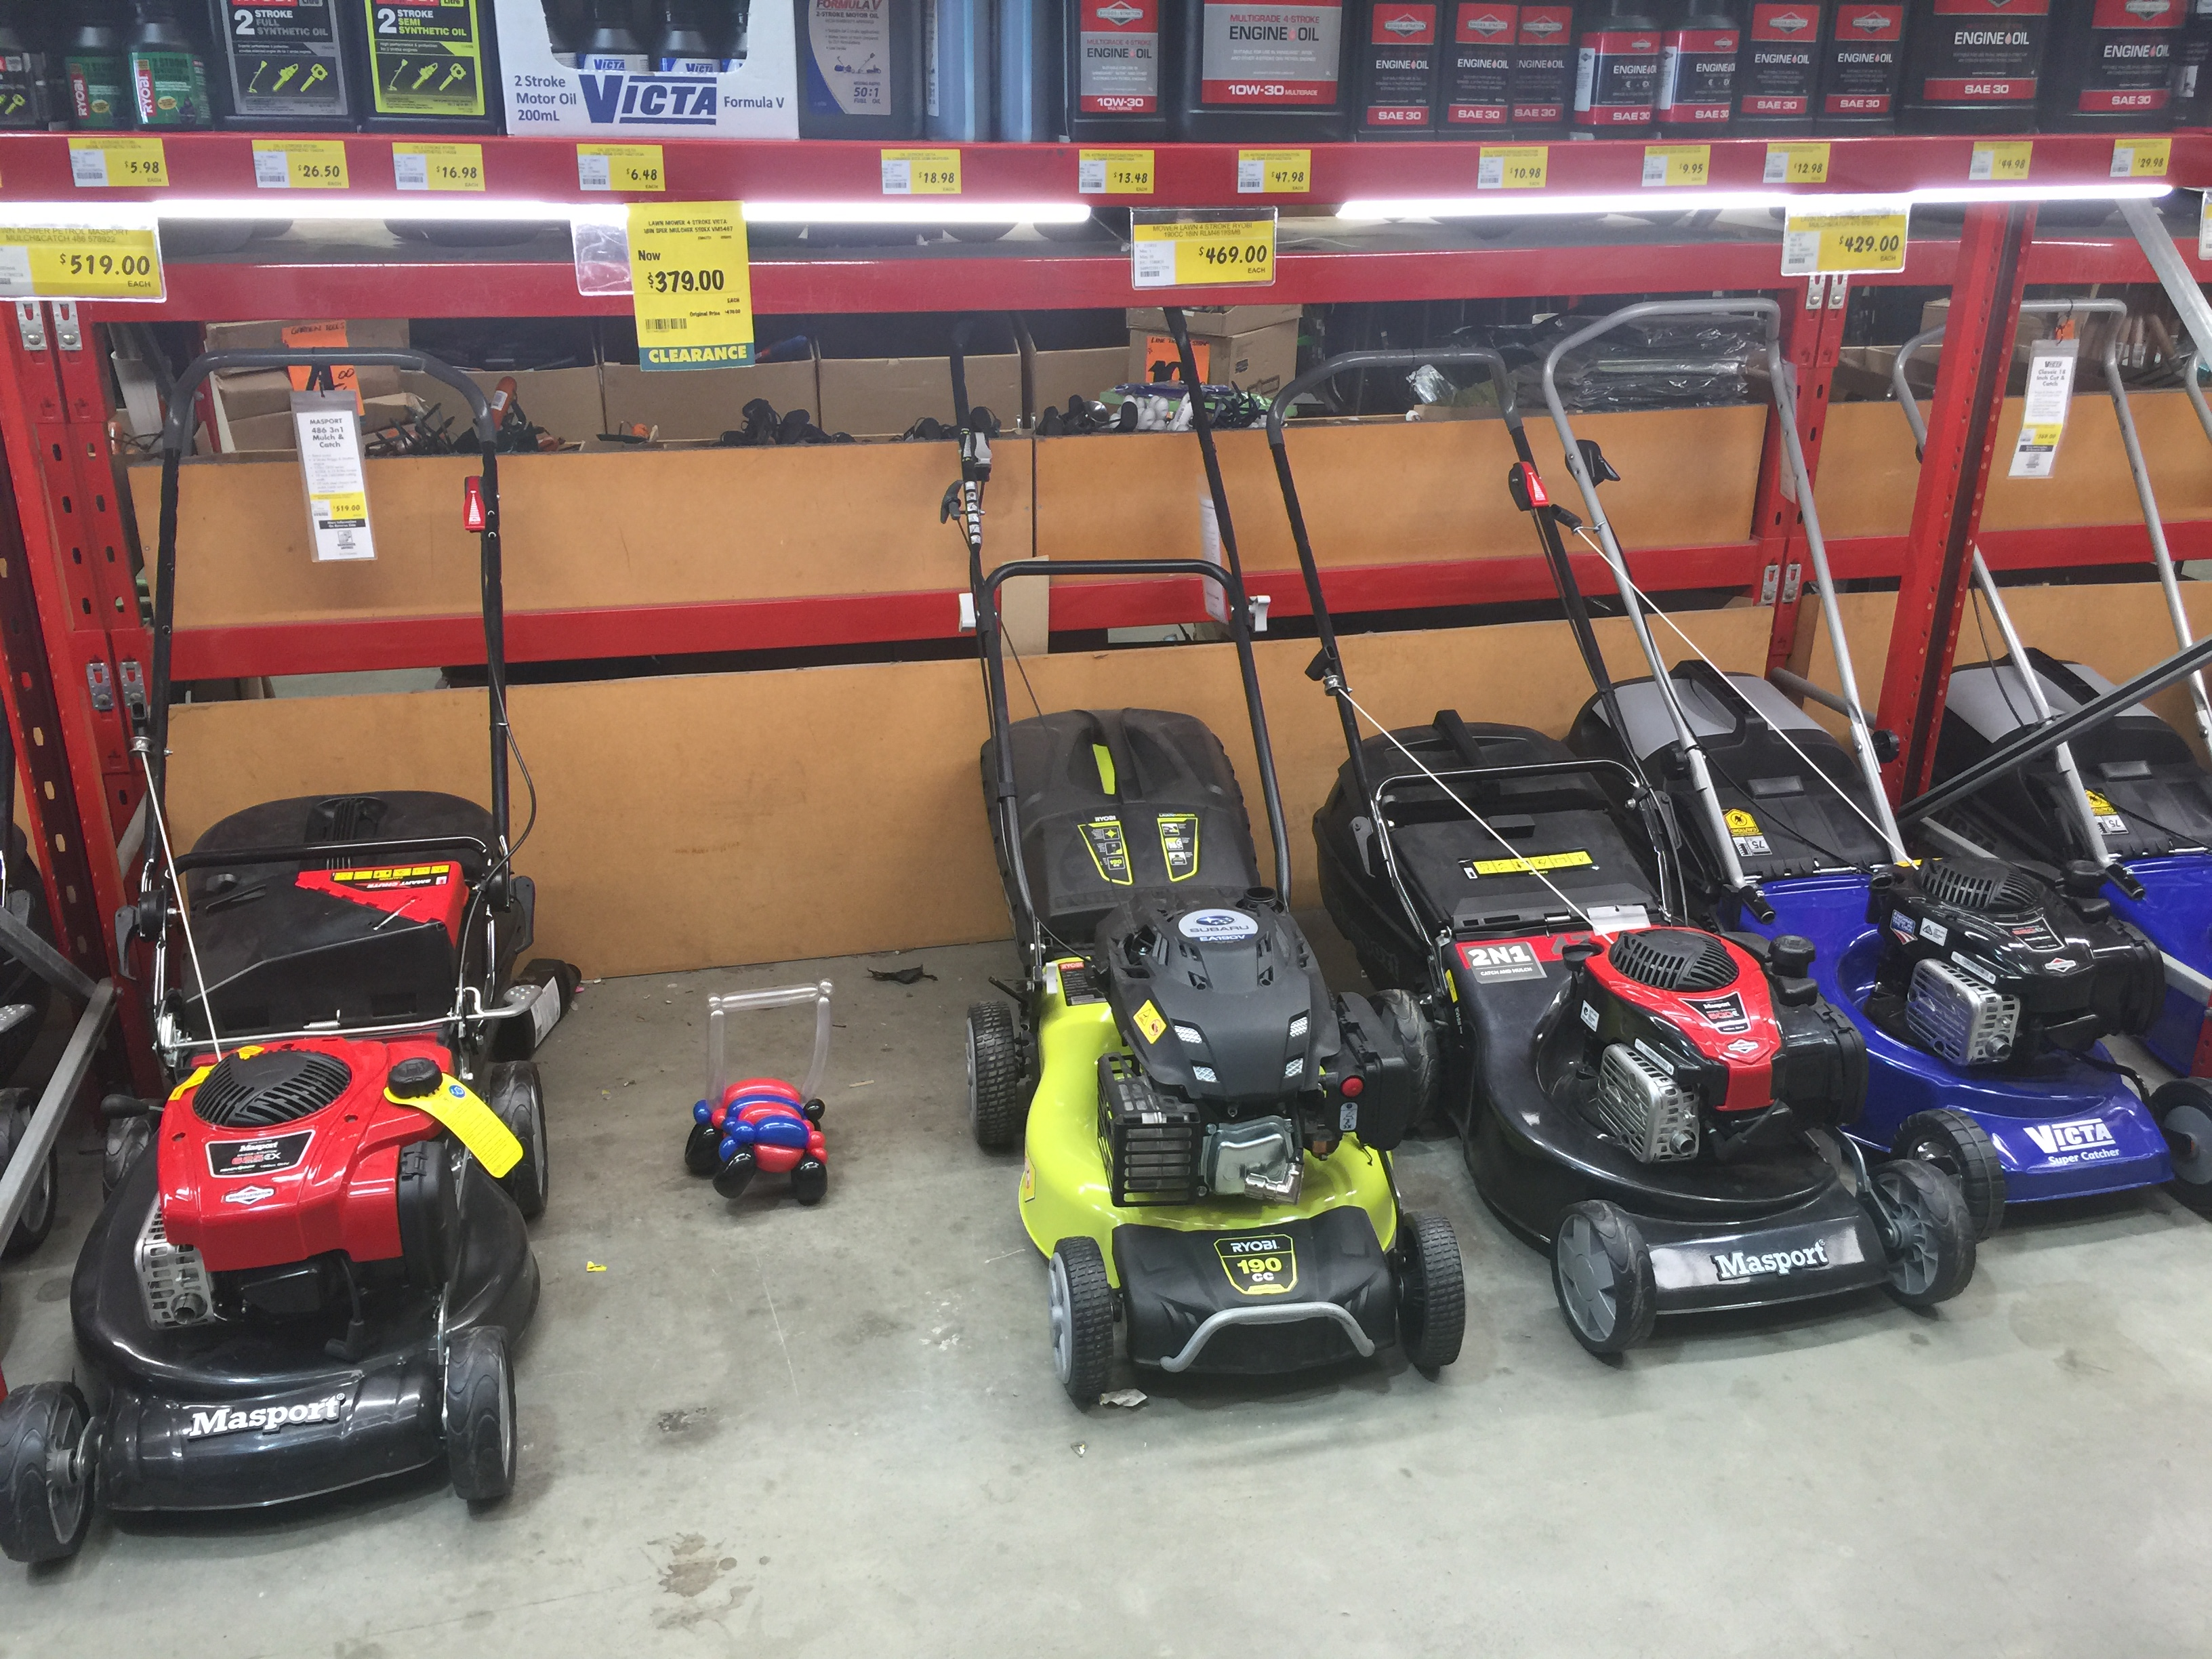 A 'new' mower hiding amongst traditional lawn mowers at Bunnings Morayfield © GreenSocks